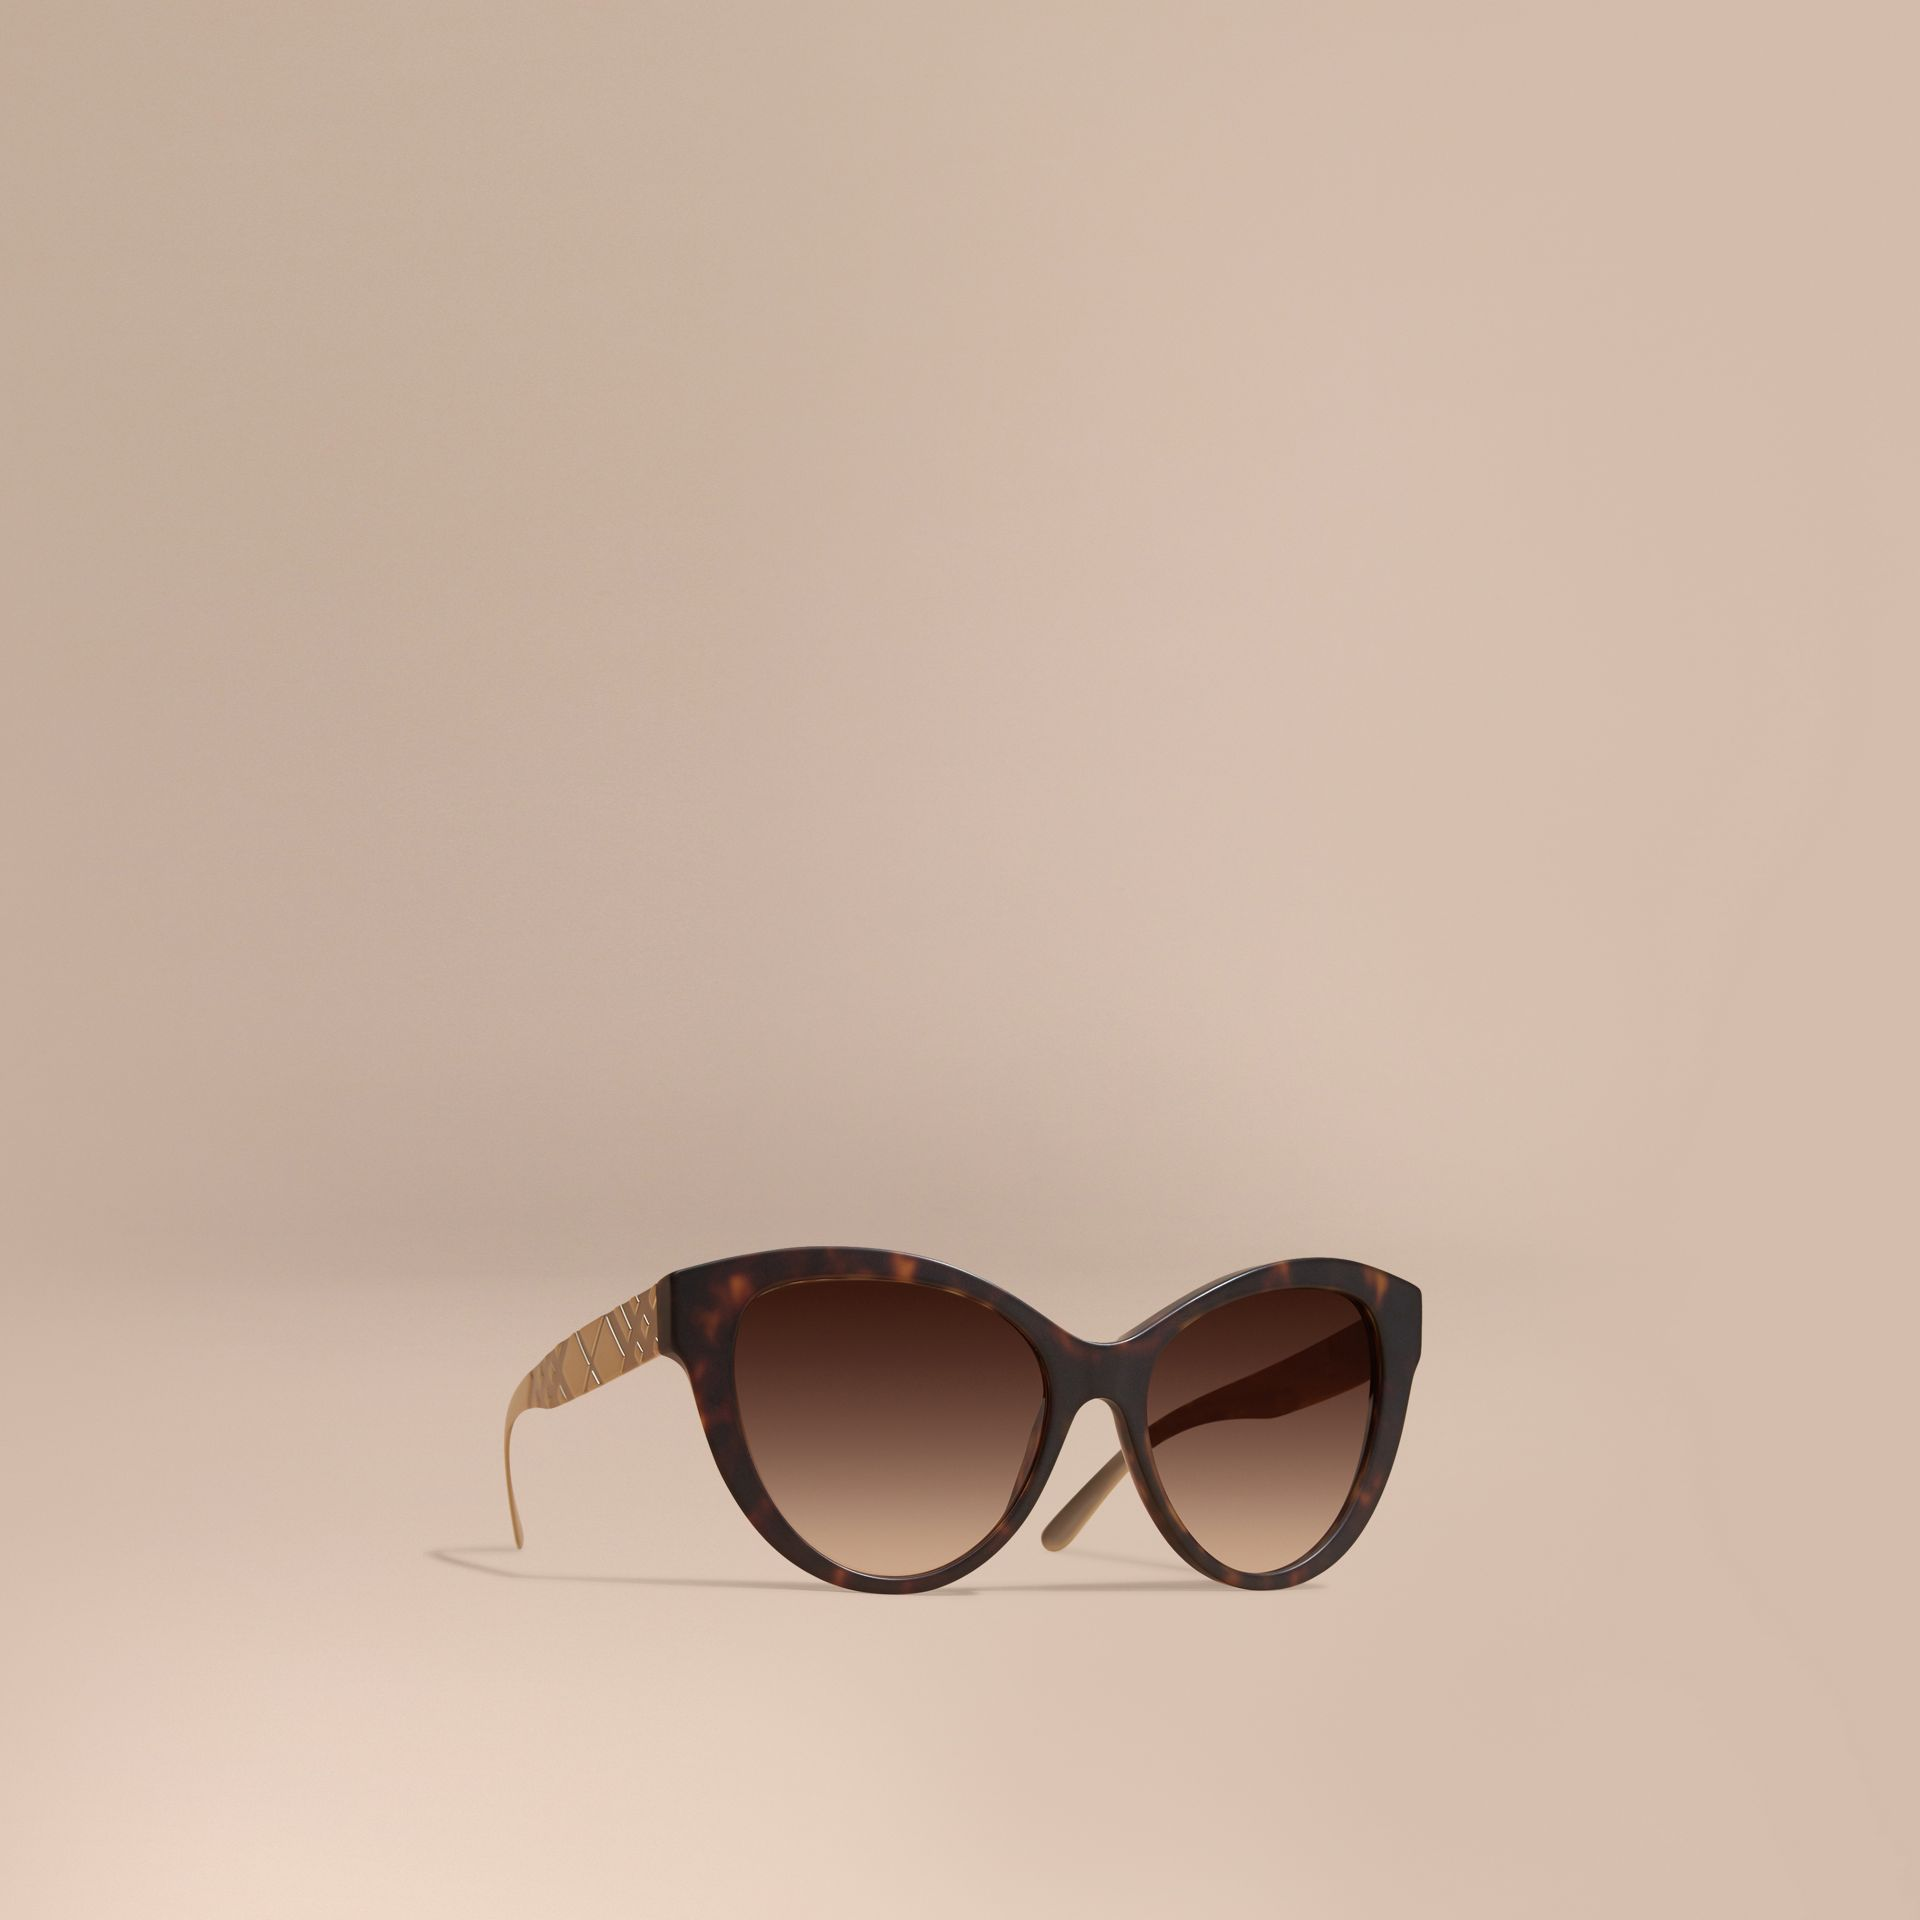 Tortoiseshell 3D Check Cat-eye Sunglasses Tortoiseshell - gallery image 1